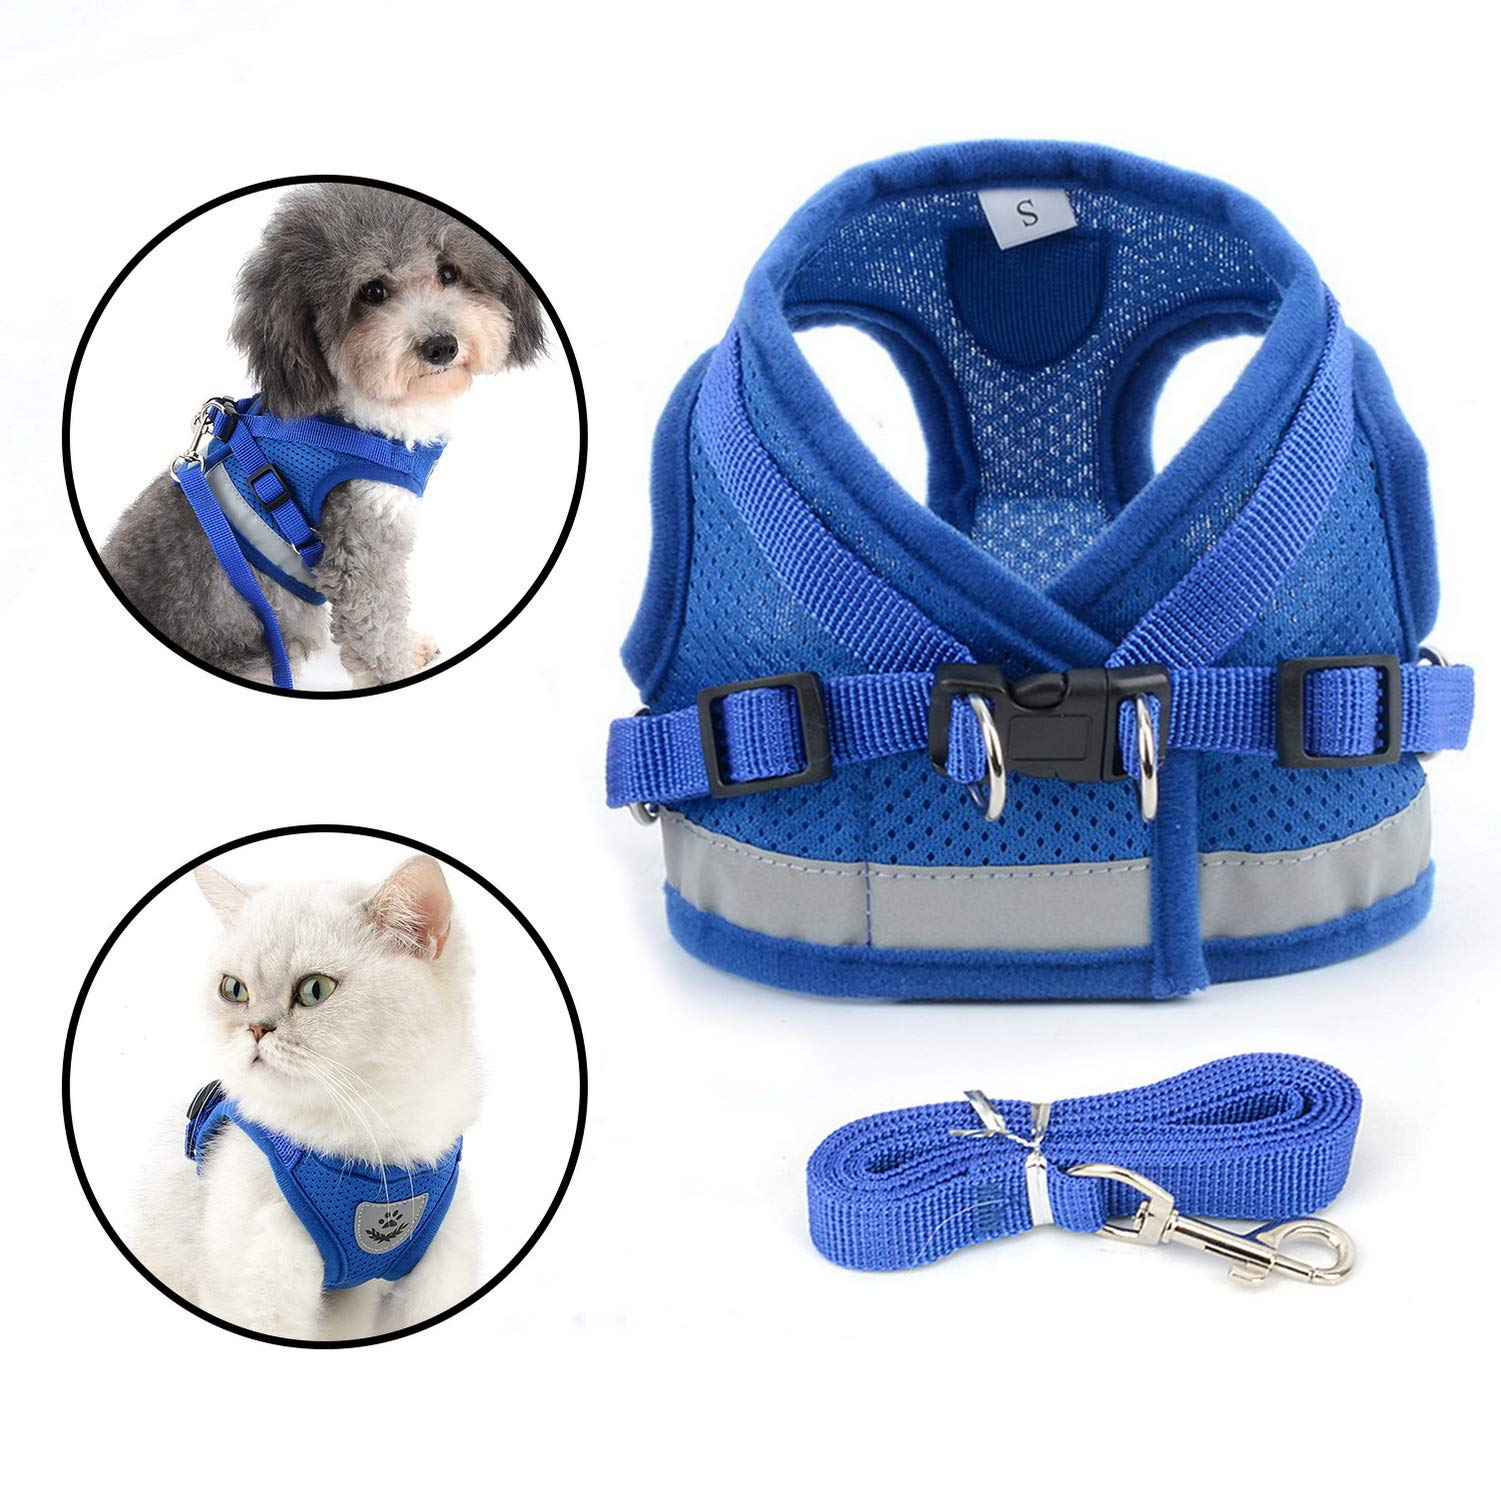 Zunea Escape Proof Cat Harness and Leash Set for Walking, Adjustable Reflective No Pull Soft Mesh Padded Vest Harnesses, Step-in Boy Girl Puppy Harness for Training Hiking